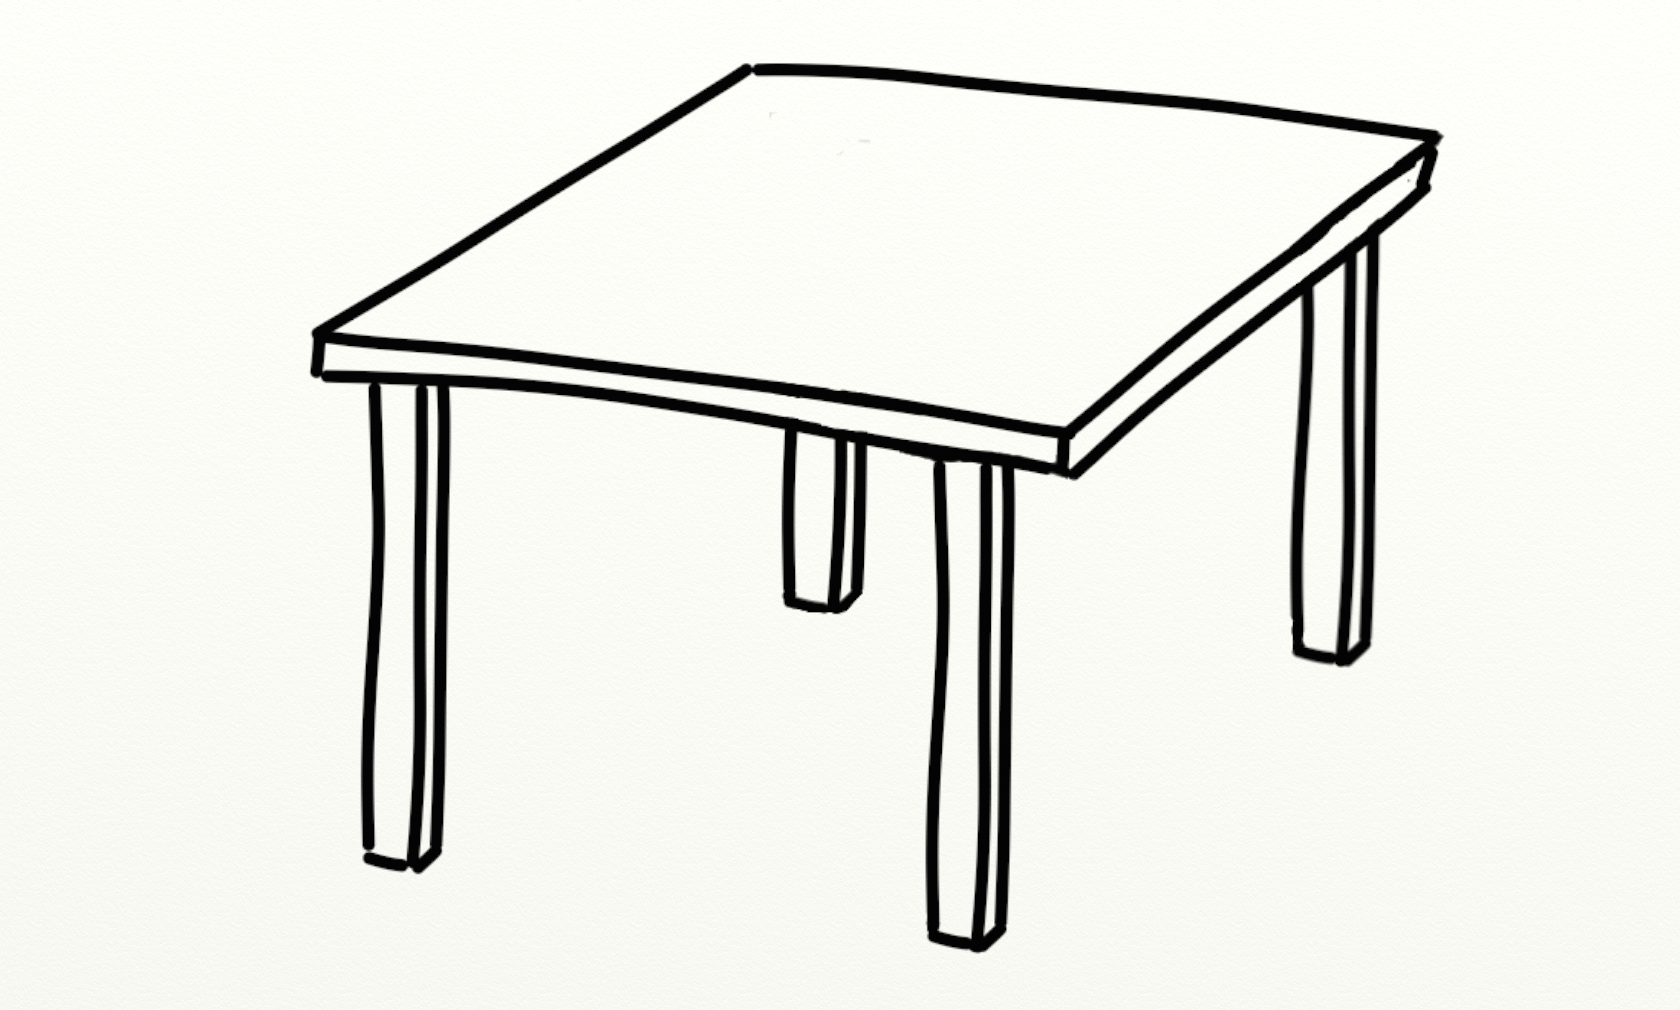 Line Art Table : Table outline clipart best